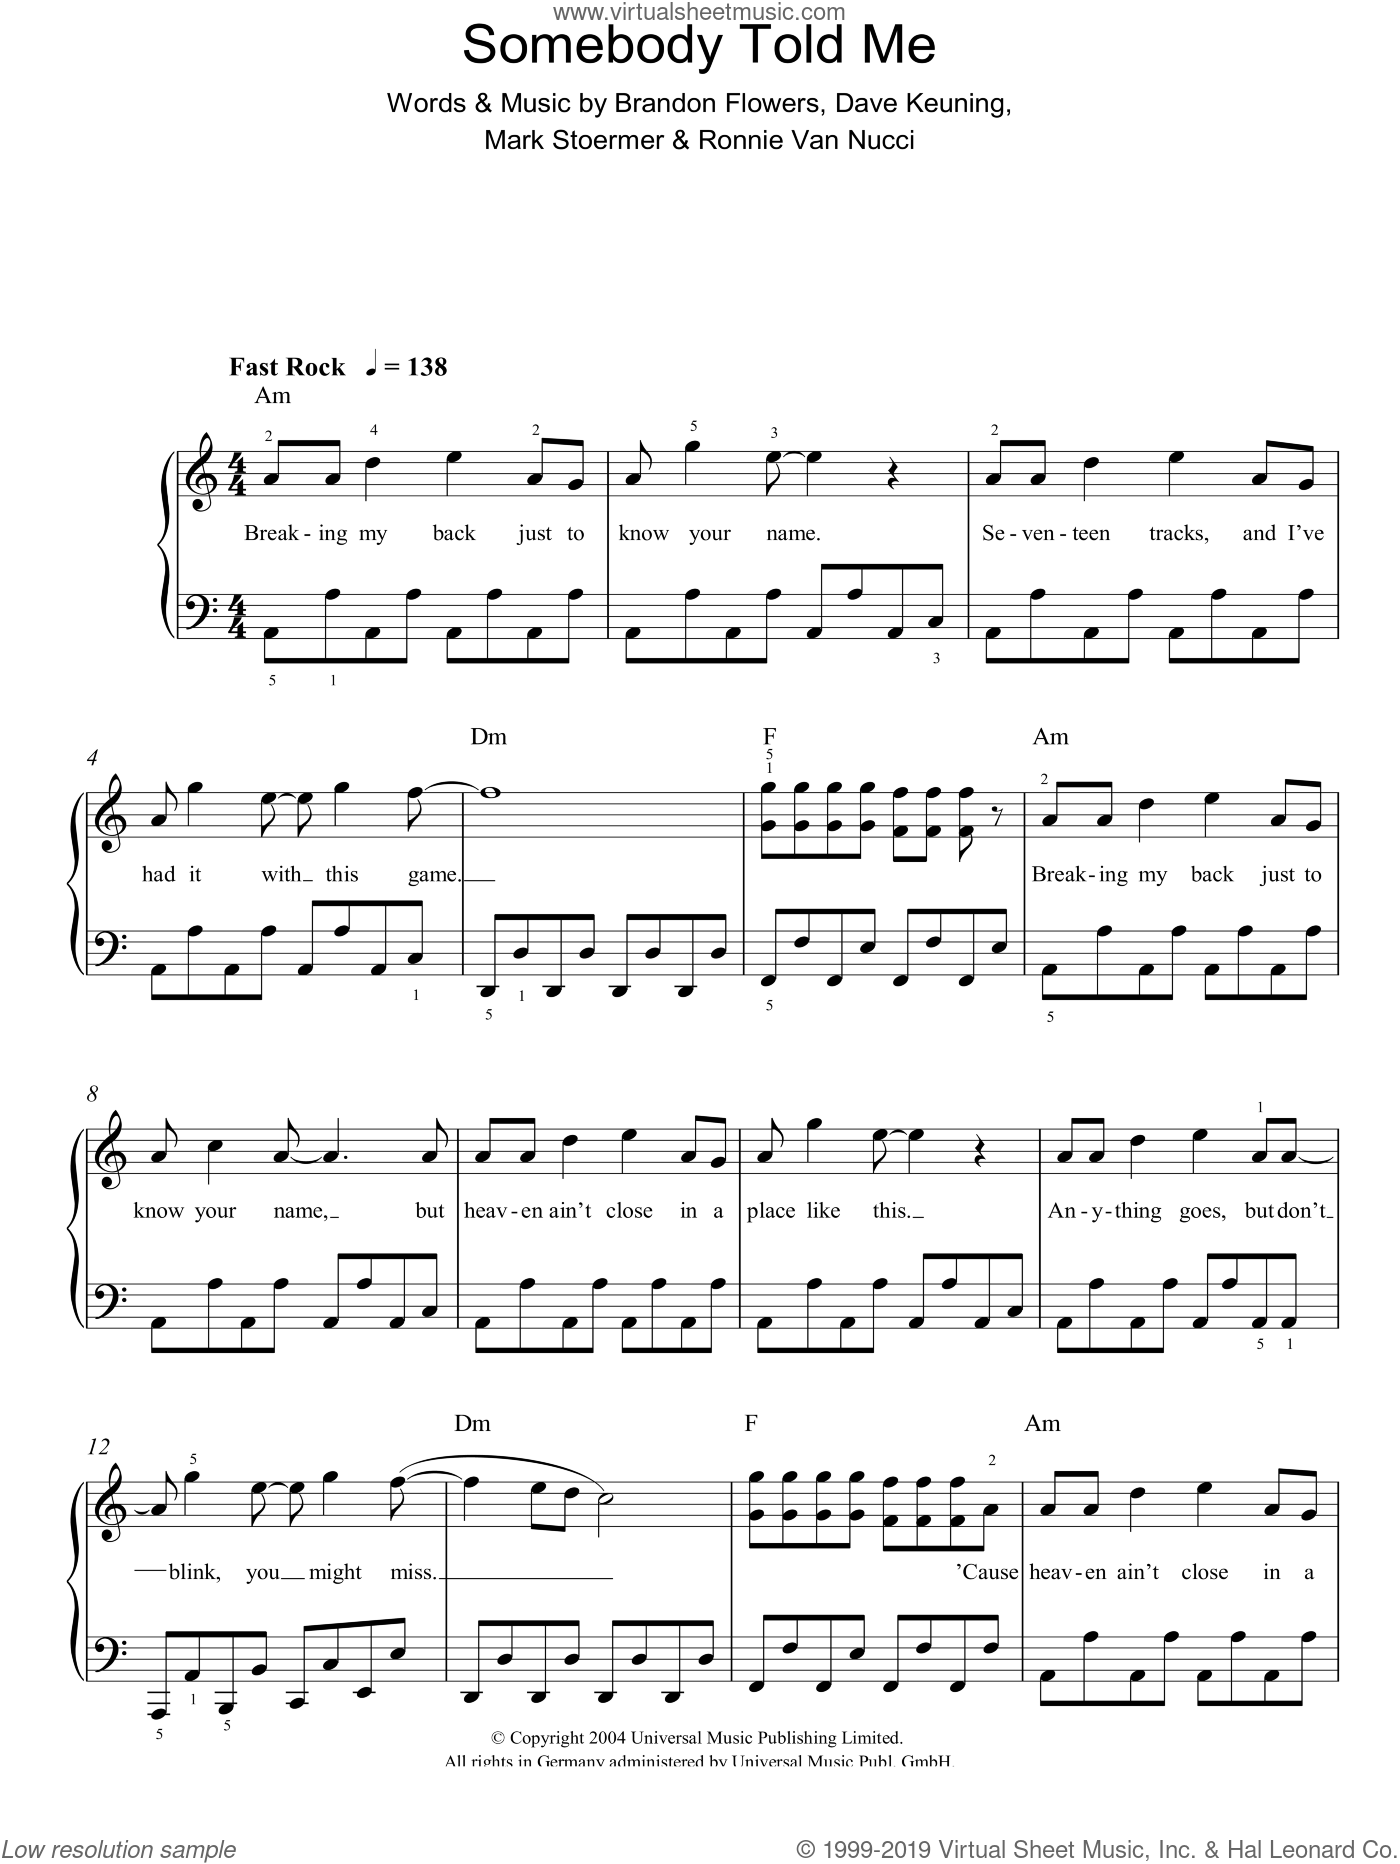 Somebody Told Me sheet music for piano solo by Brandon Flowers, The Killers, Dave Keuning and Mark Stoermer. Score Image Preview.